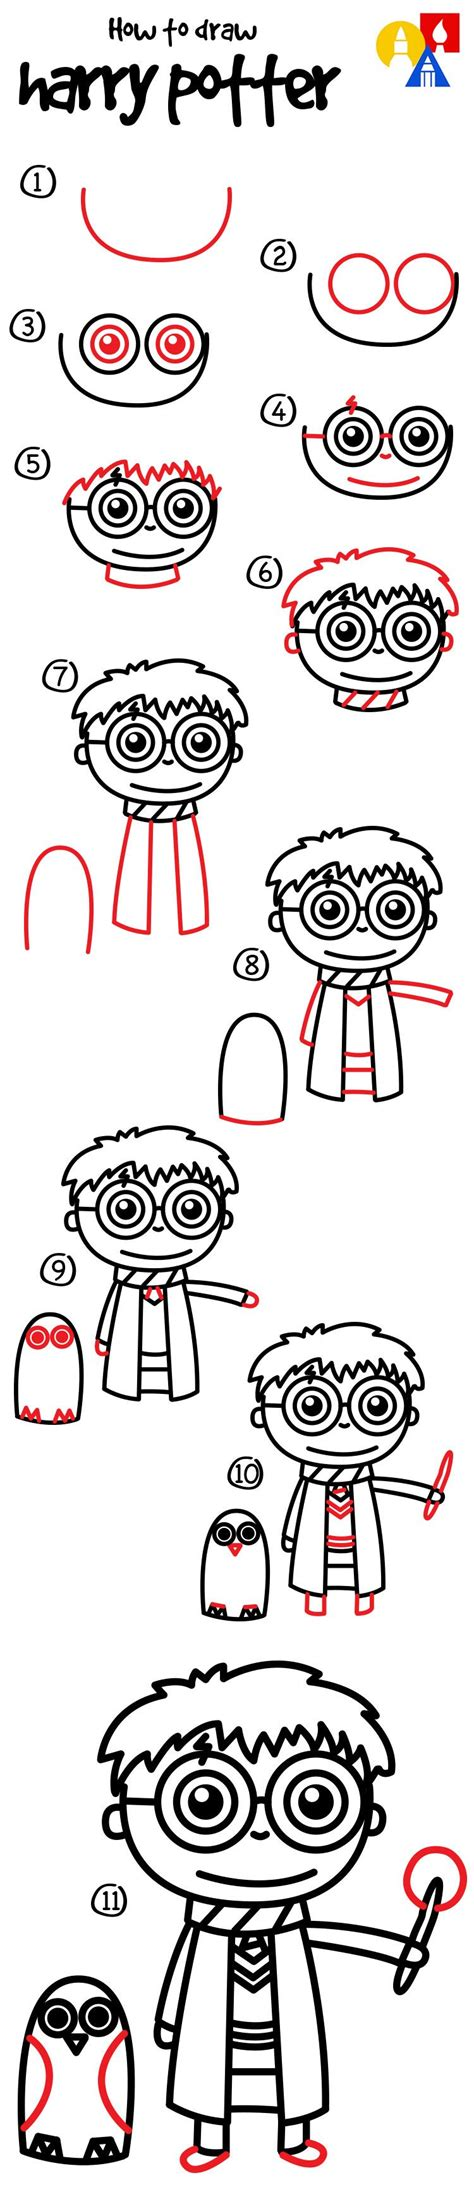 How To Draw A Cartoon Harry Potter And Hedwig - Art For